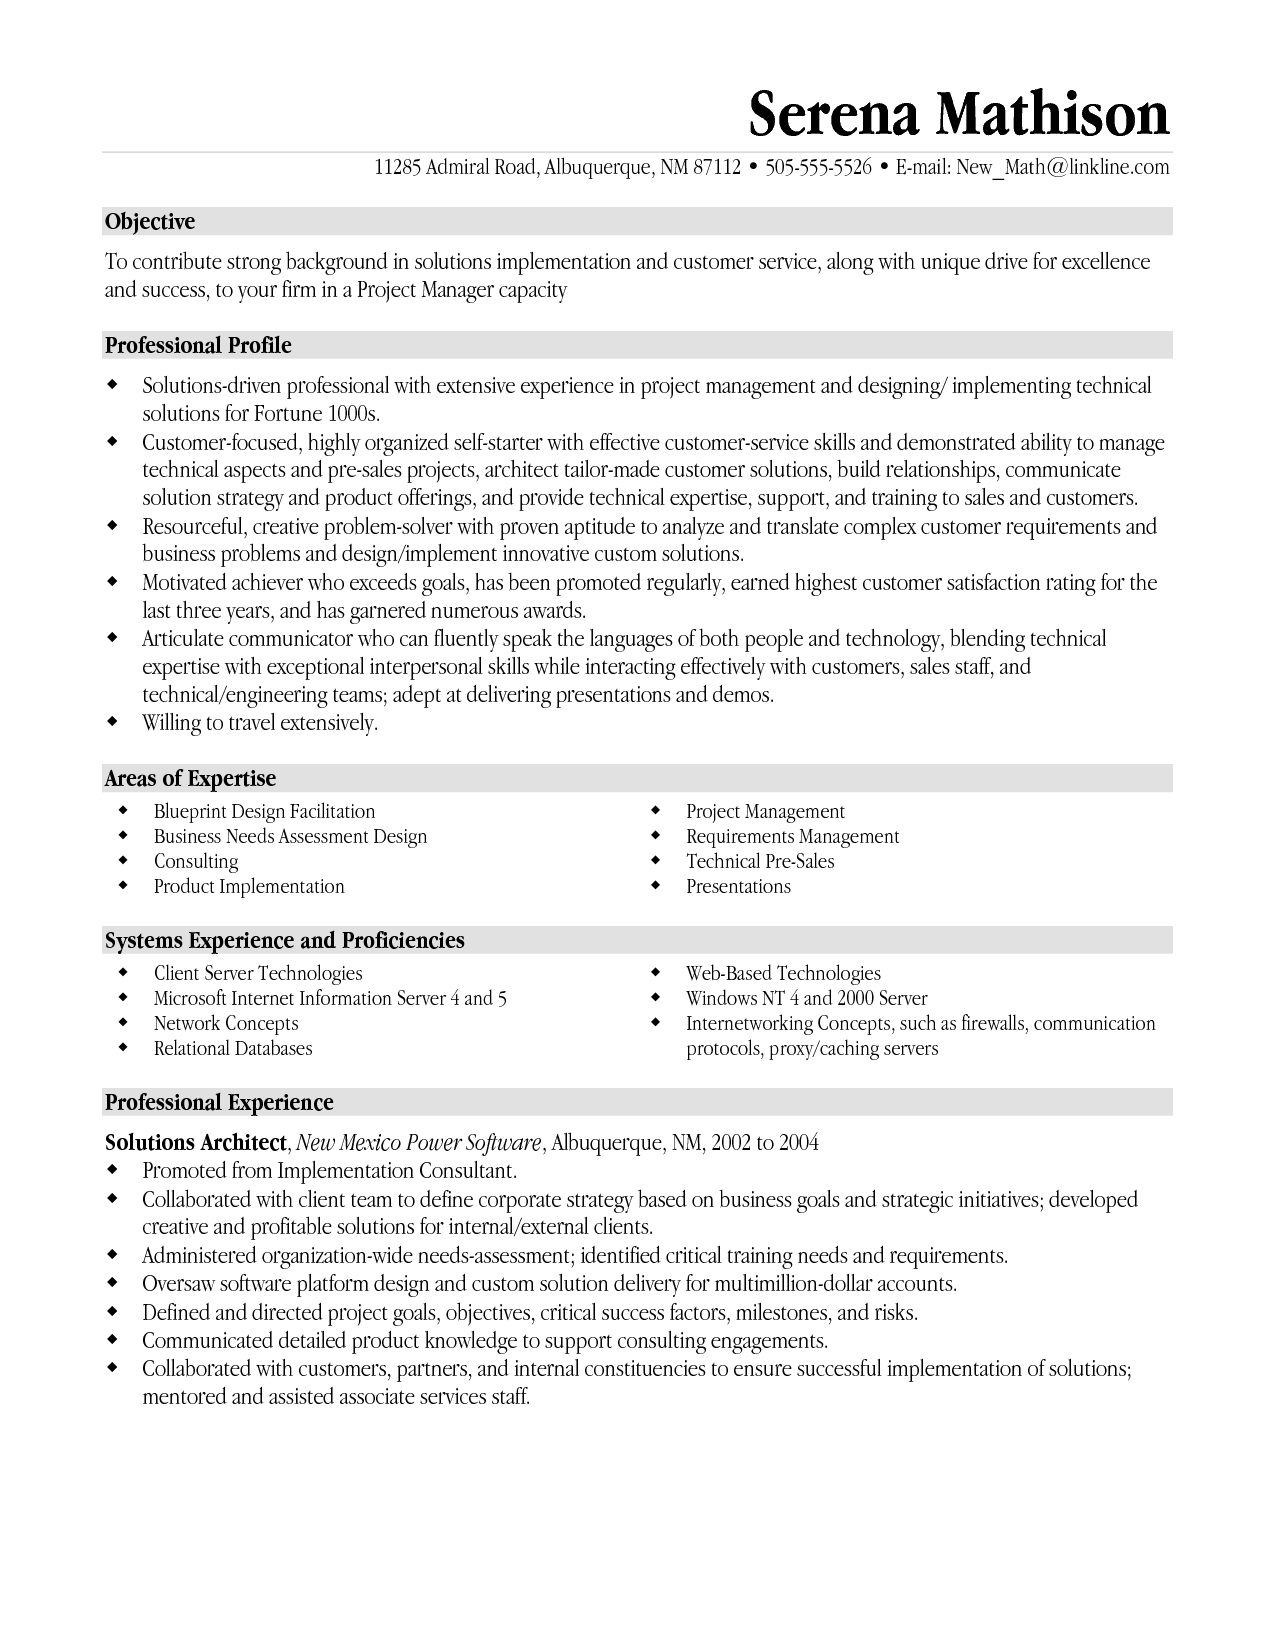 Lunch Supervisor Resume Sample Resume Templates Project Manager Project Management